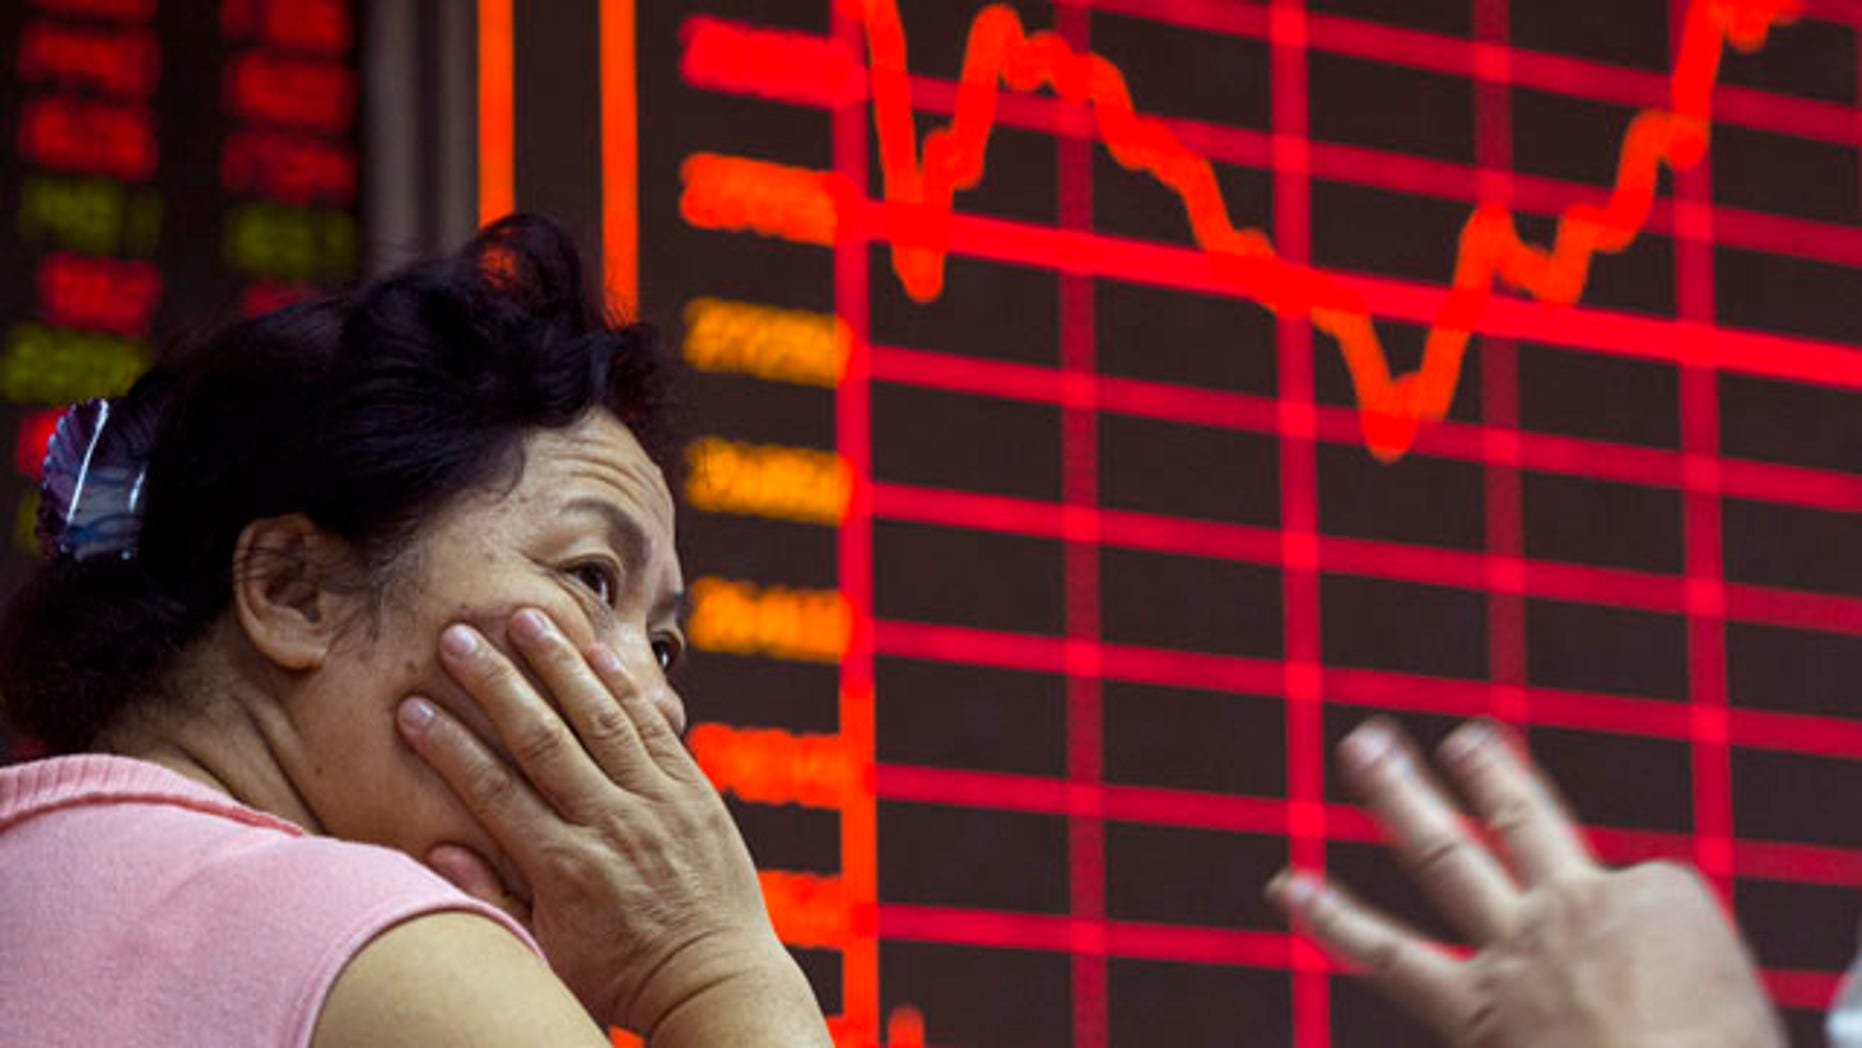 Aug. 26, 2015: A Chinese investor monitors stock prices at a brokerage in Beijing. (AP Photo/Ng Han Guan)